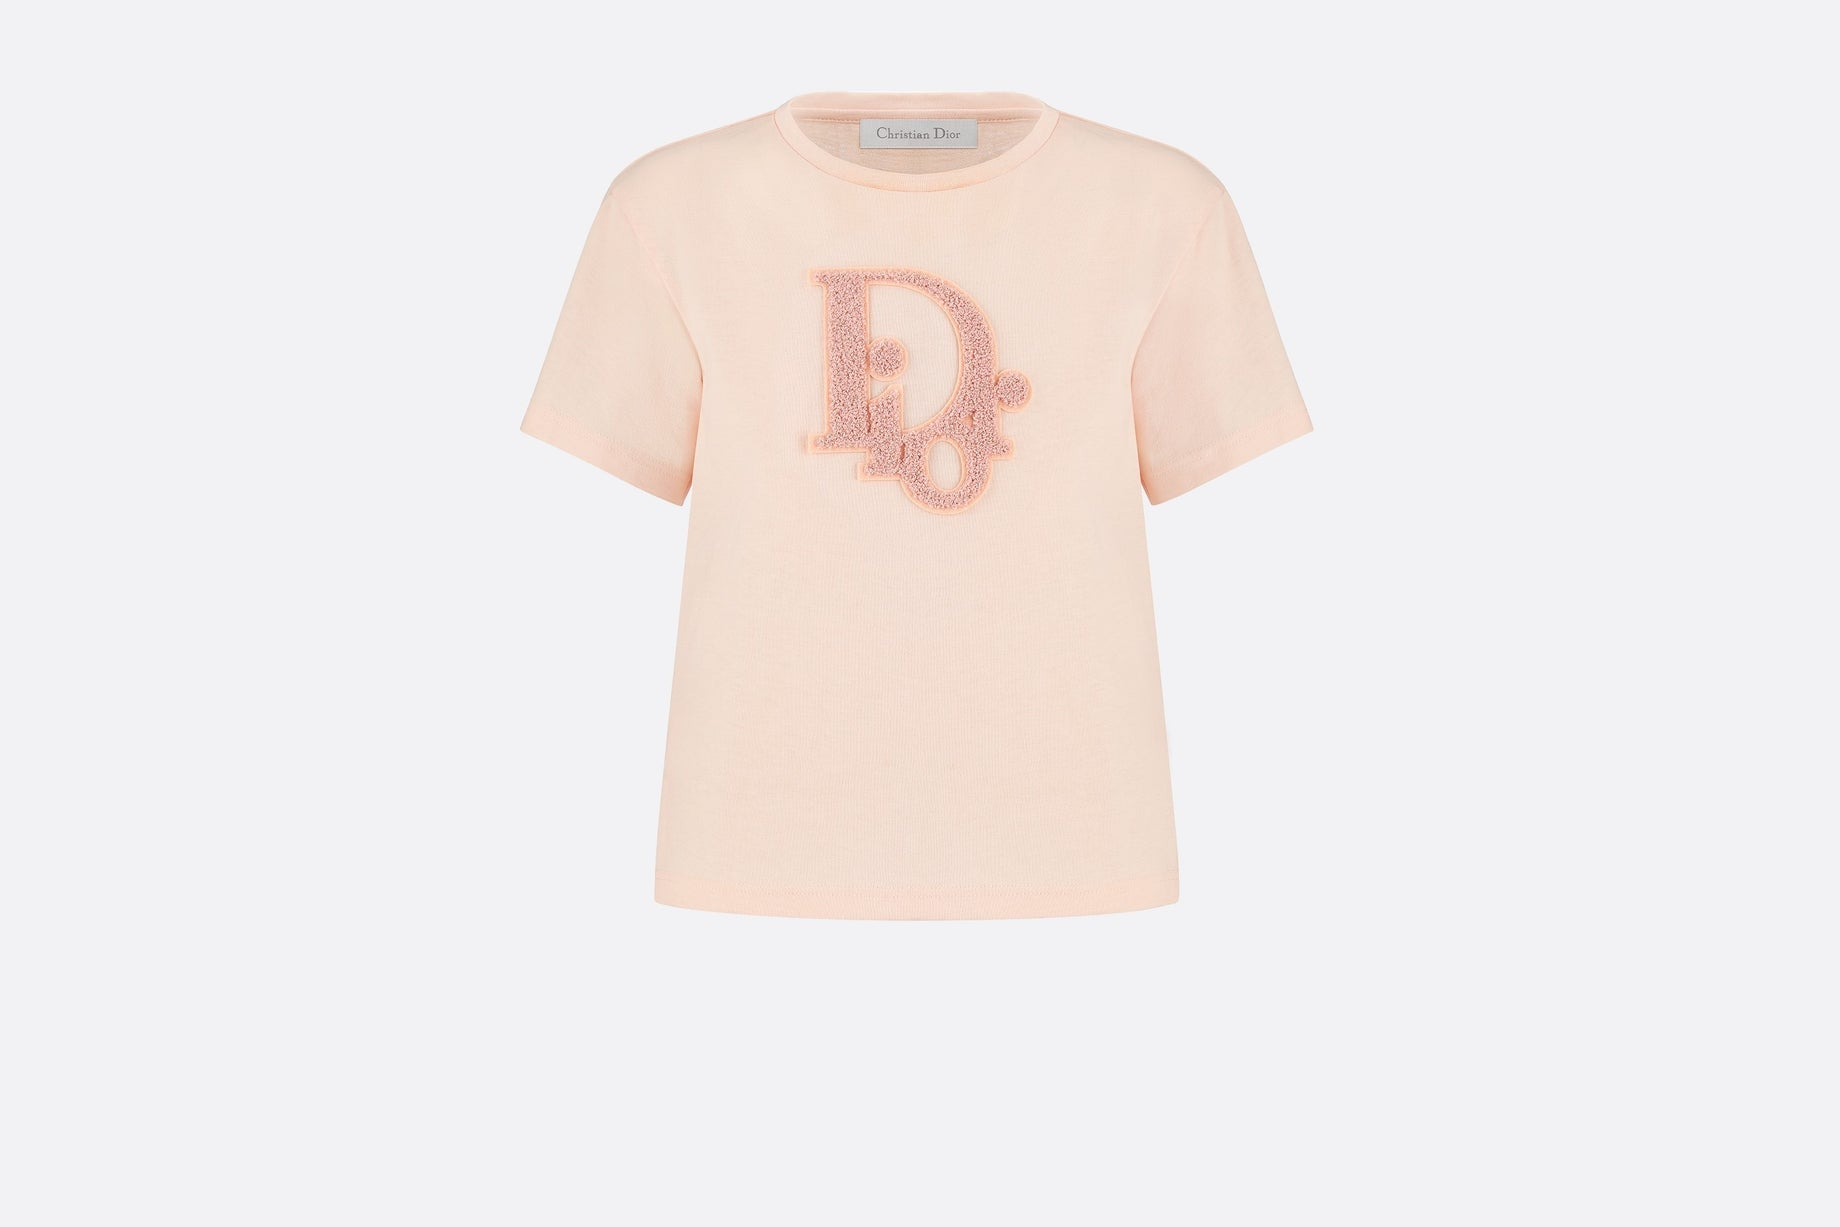 T-Shirt • Pale Pink Cotton Jersey